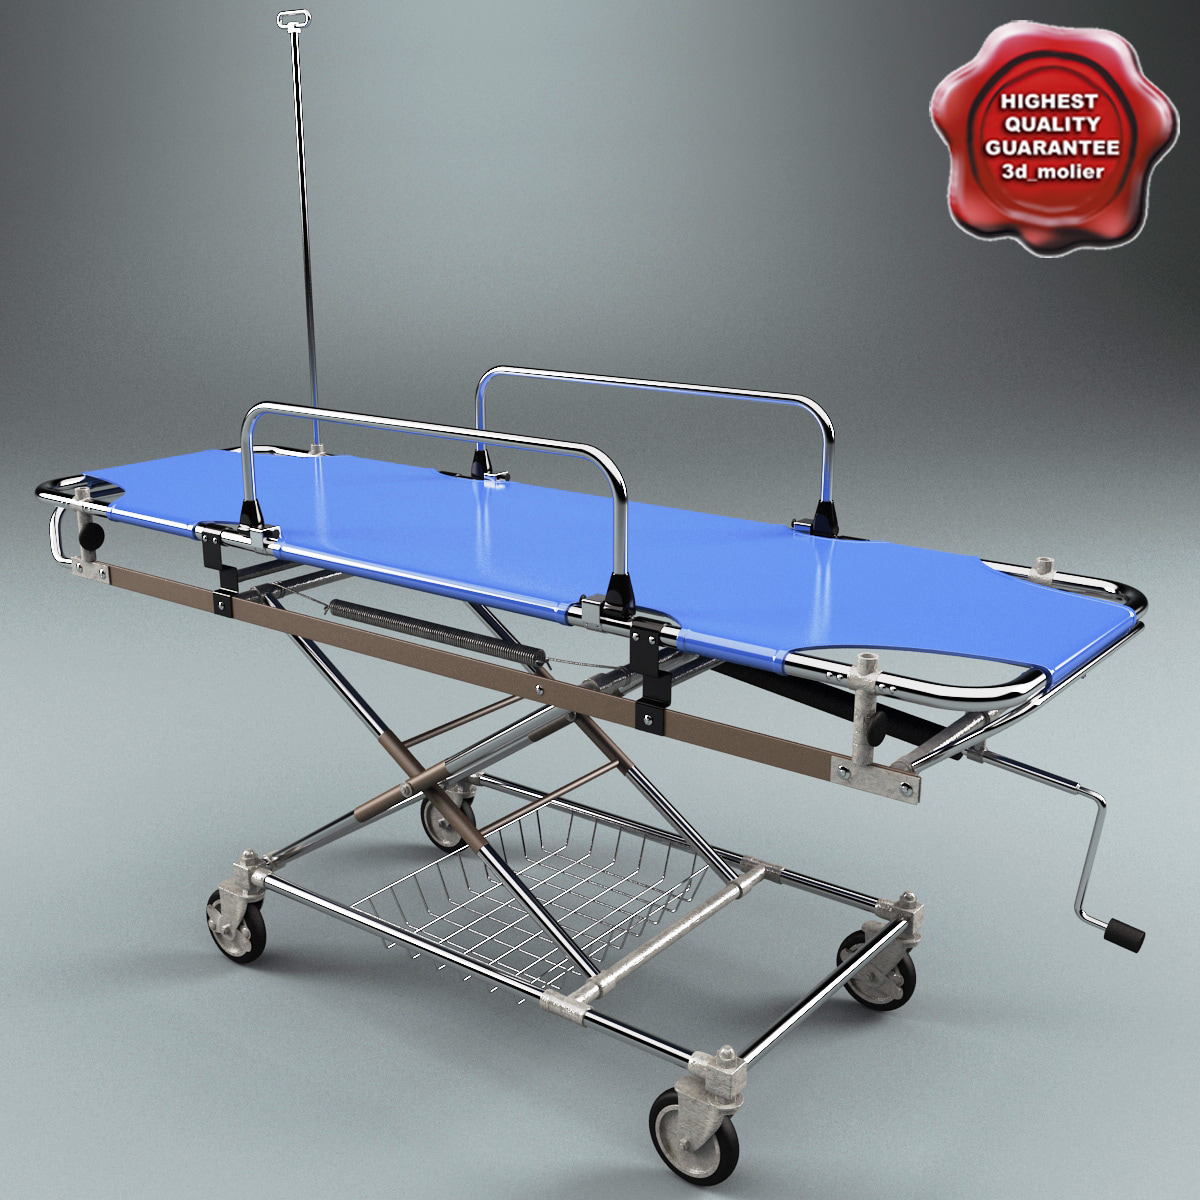 Ambulance_Stretcher_WJD5_1E_00.jpg